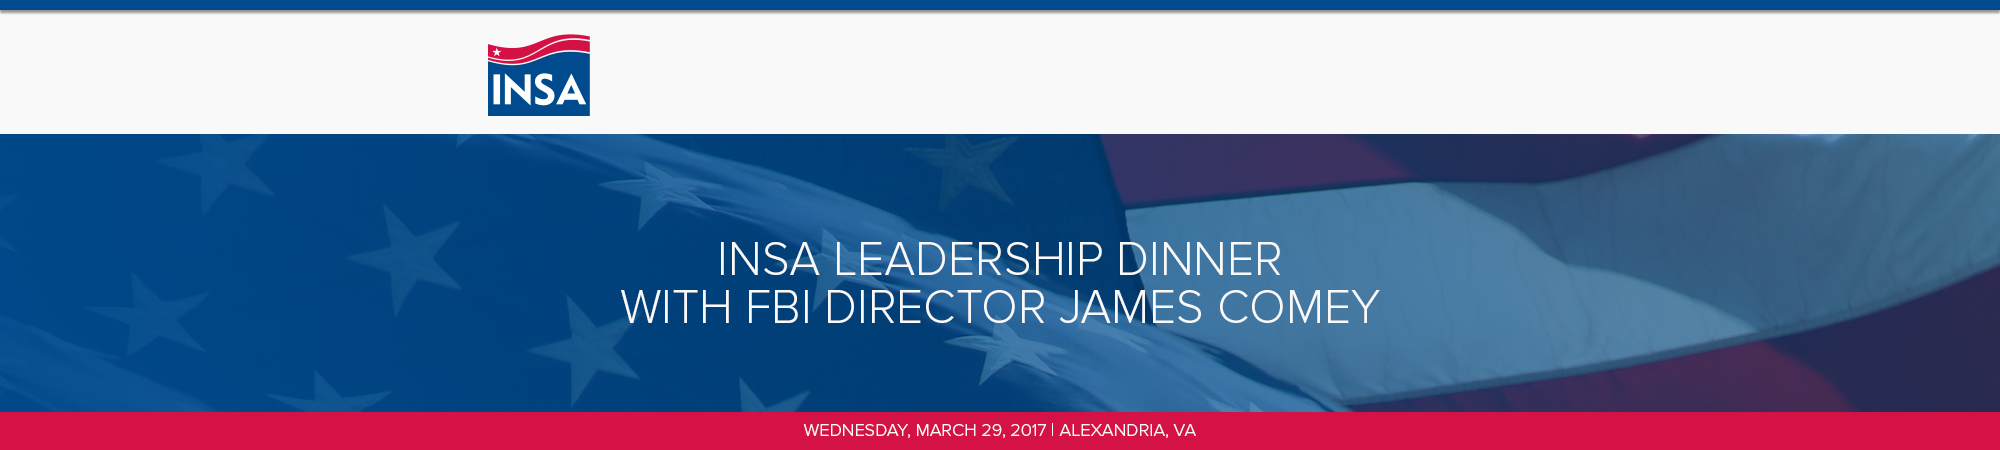 INSA Leadership Dinner with FBI Director James Comey